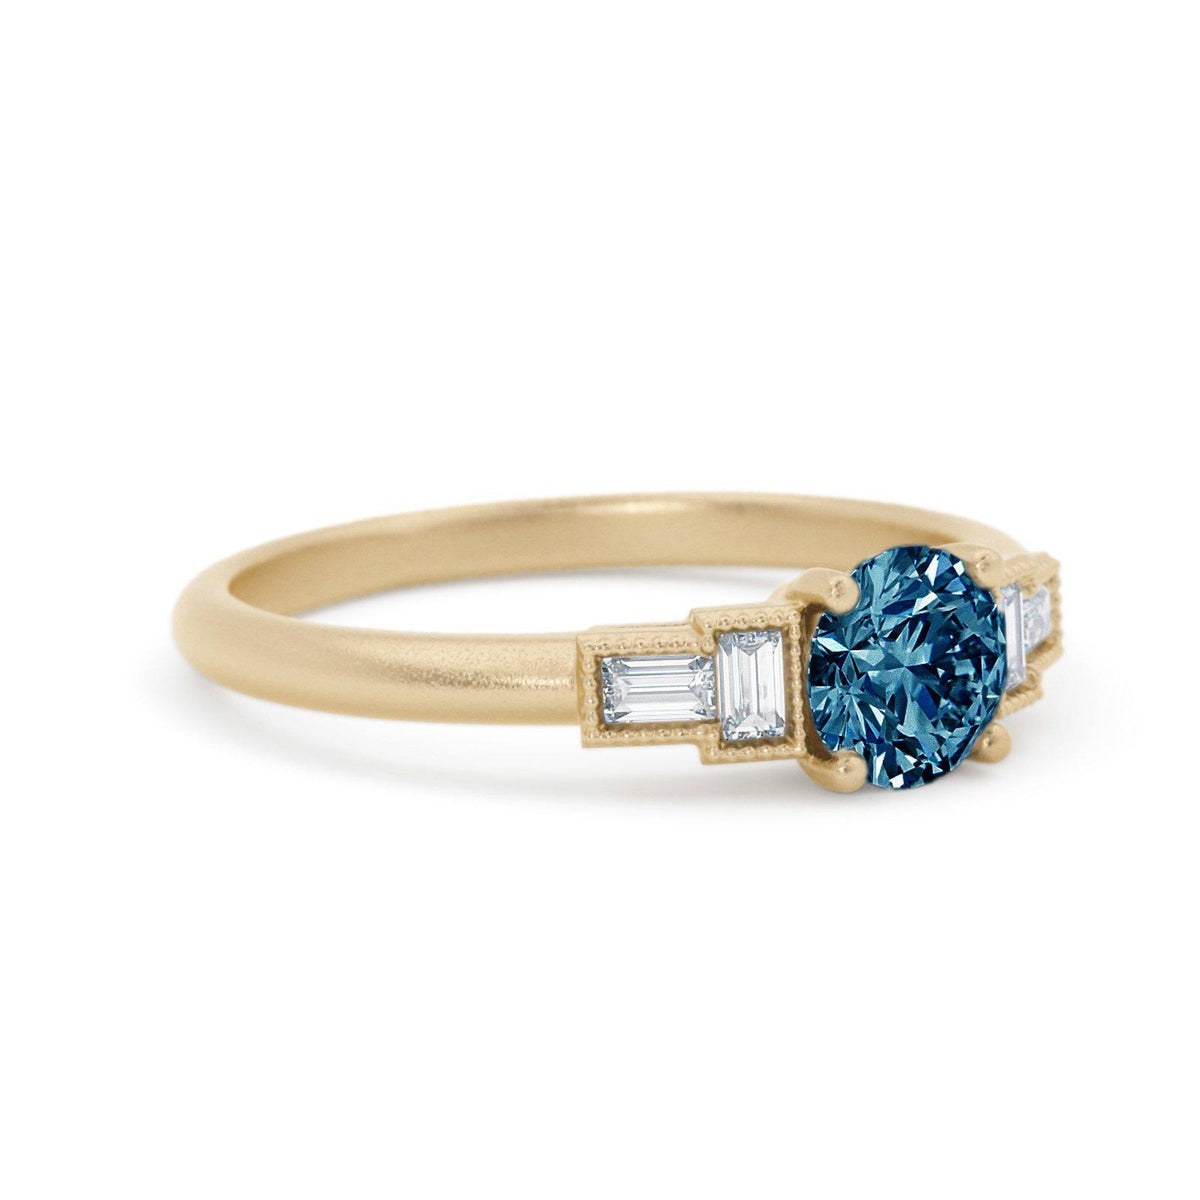 Marlow Montana Sapphire Ring with Baguette Diamonds Yellow Gold